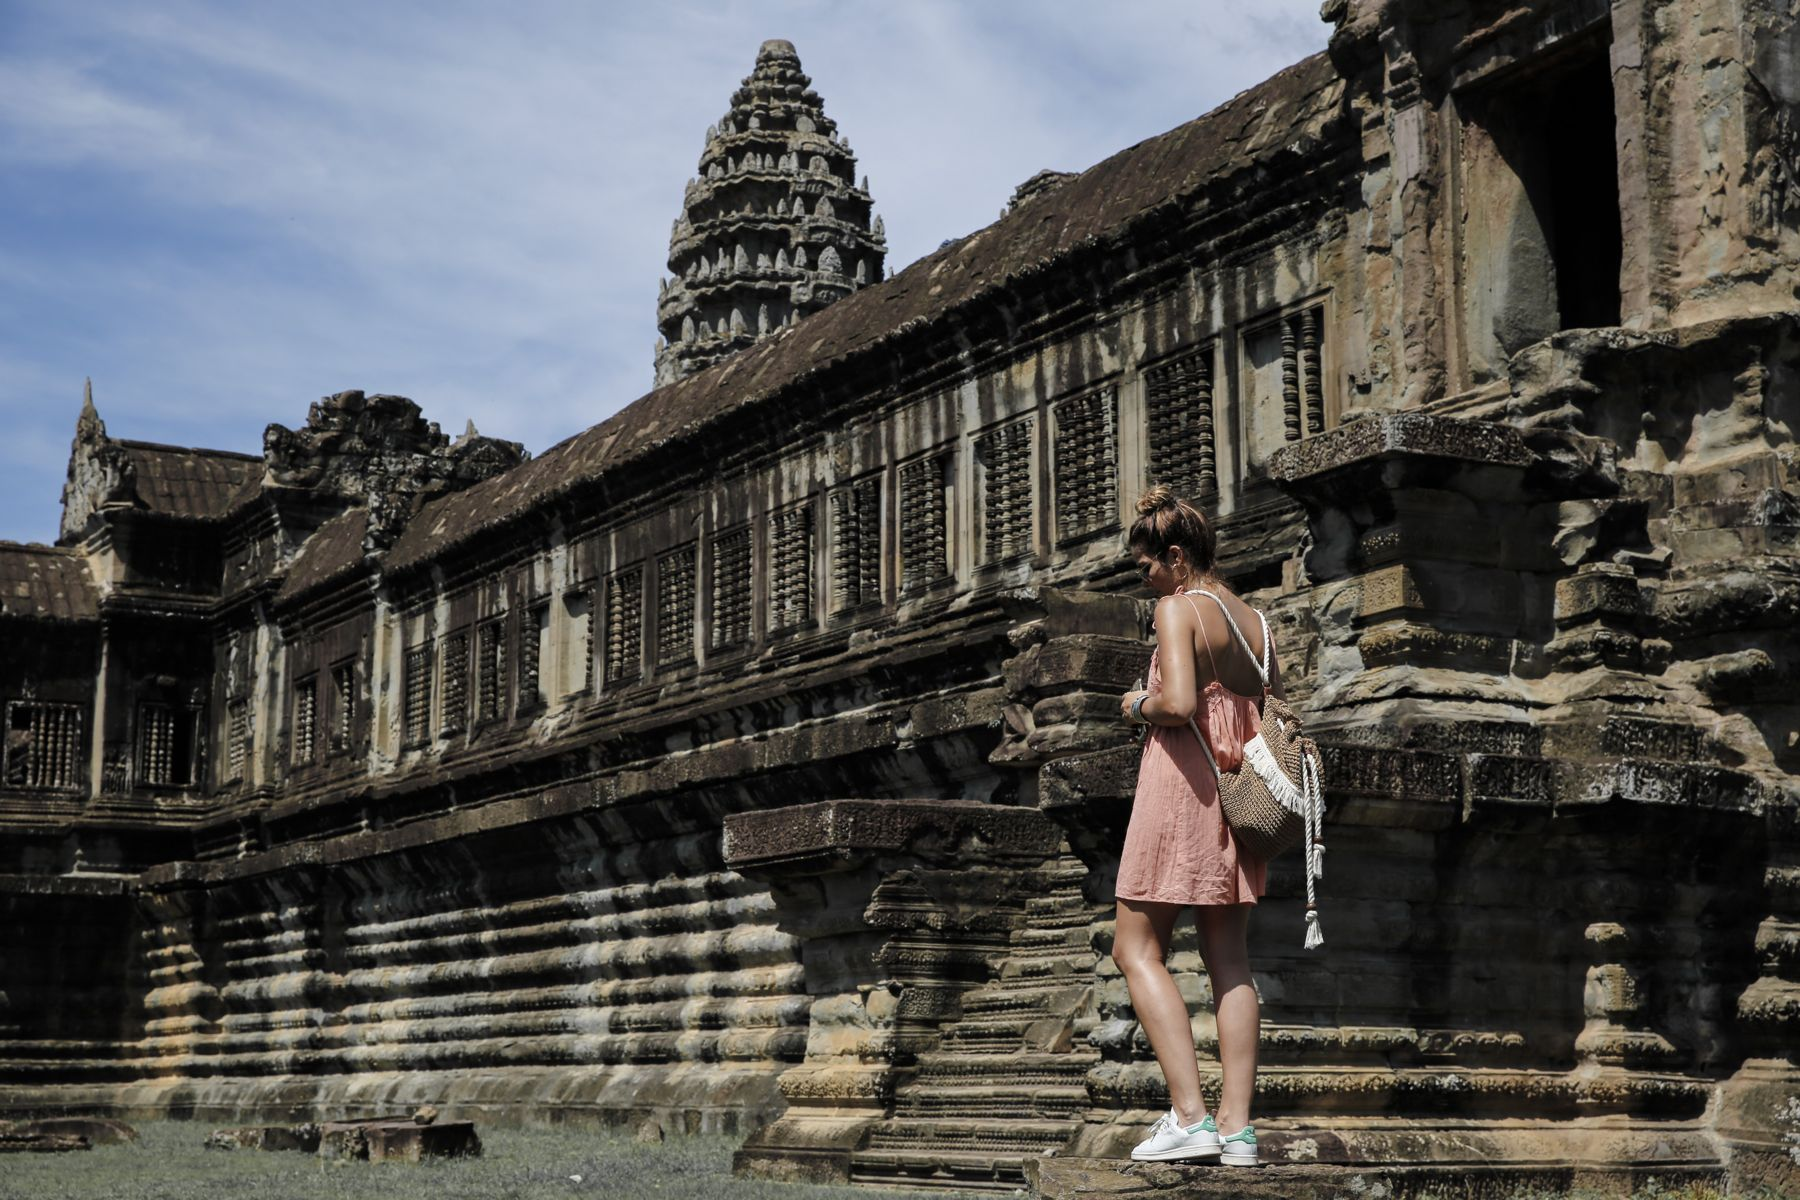 camboya cambodia angkor wat trendy taste summer trip outfit look dress sneakers stan smith vestido zapatillas asos adidas _5